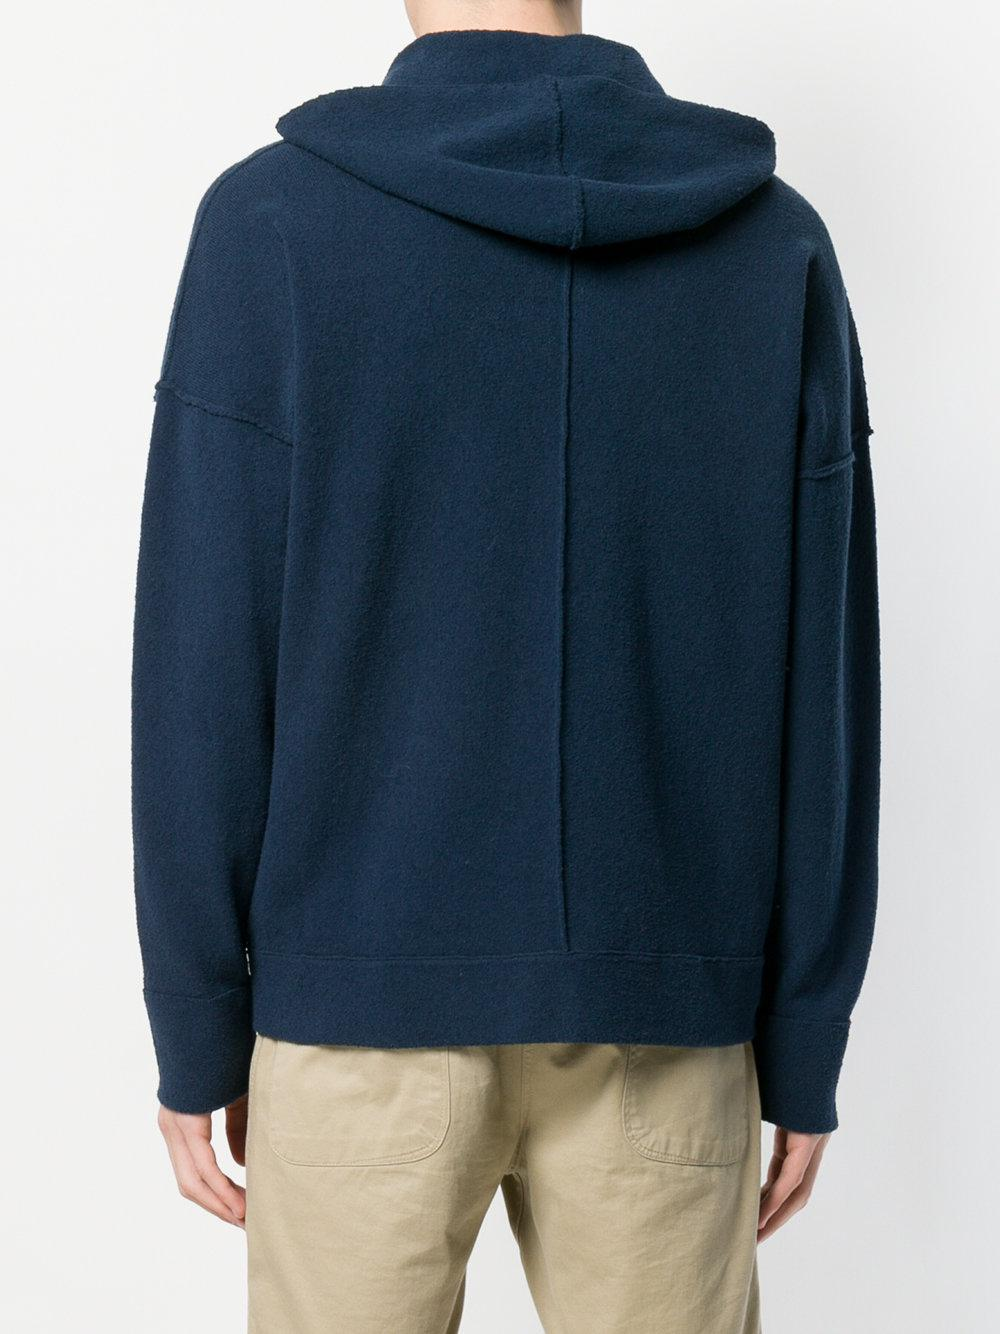 Roberto Collina Cotton Relaxed Fit Hoodie in Blue for Men